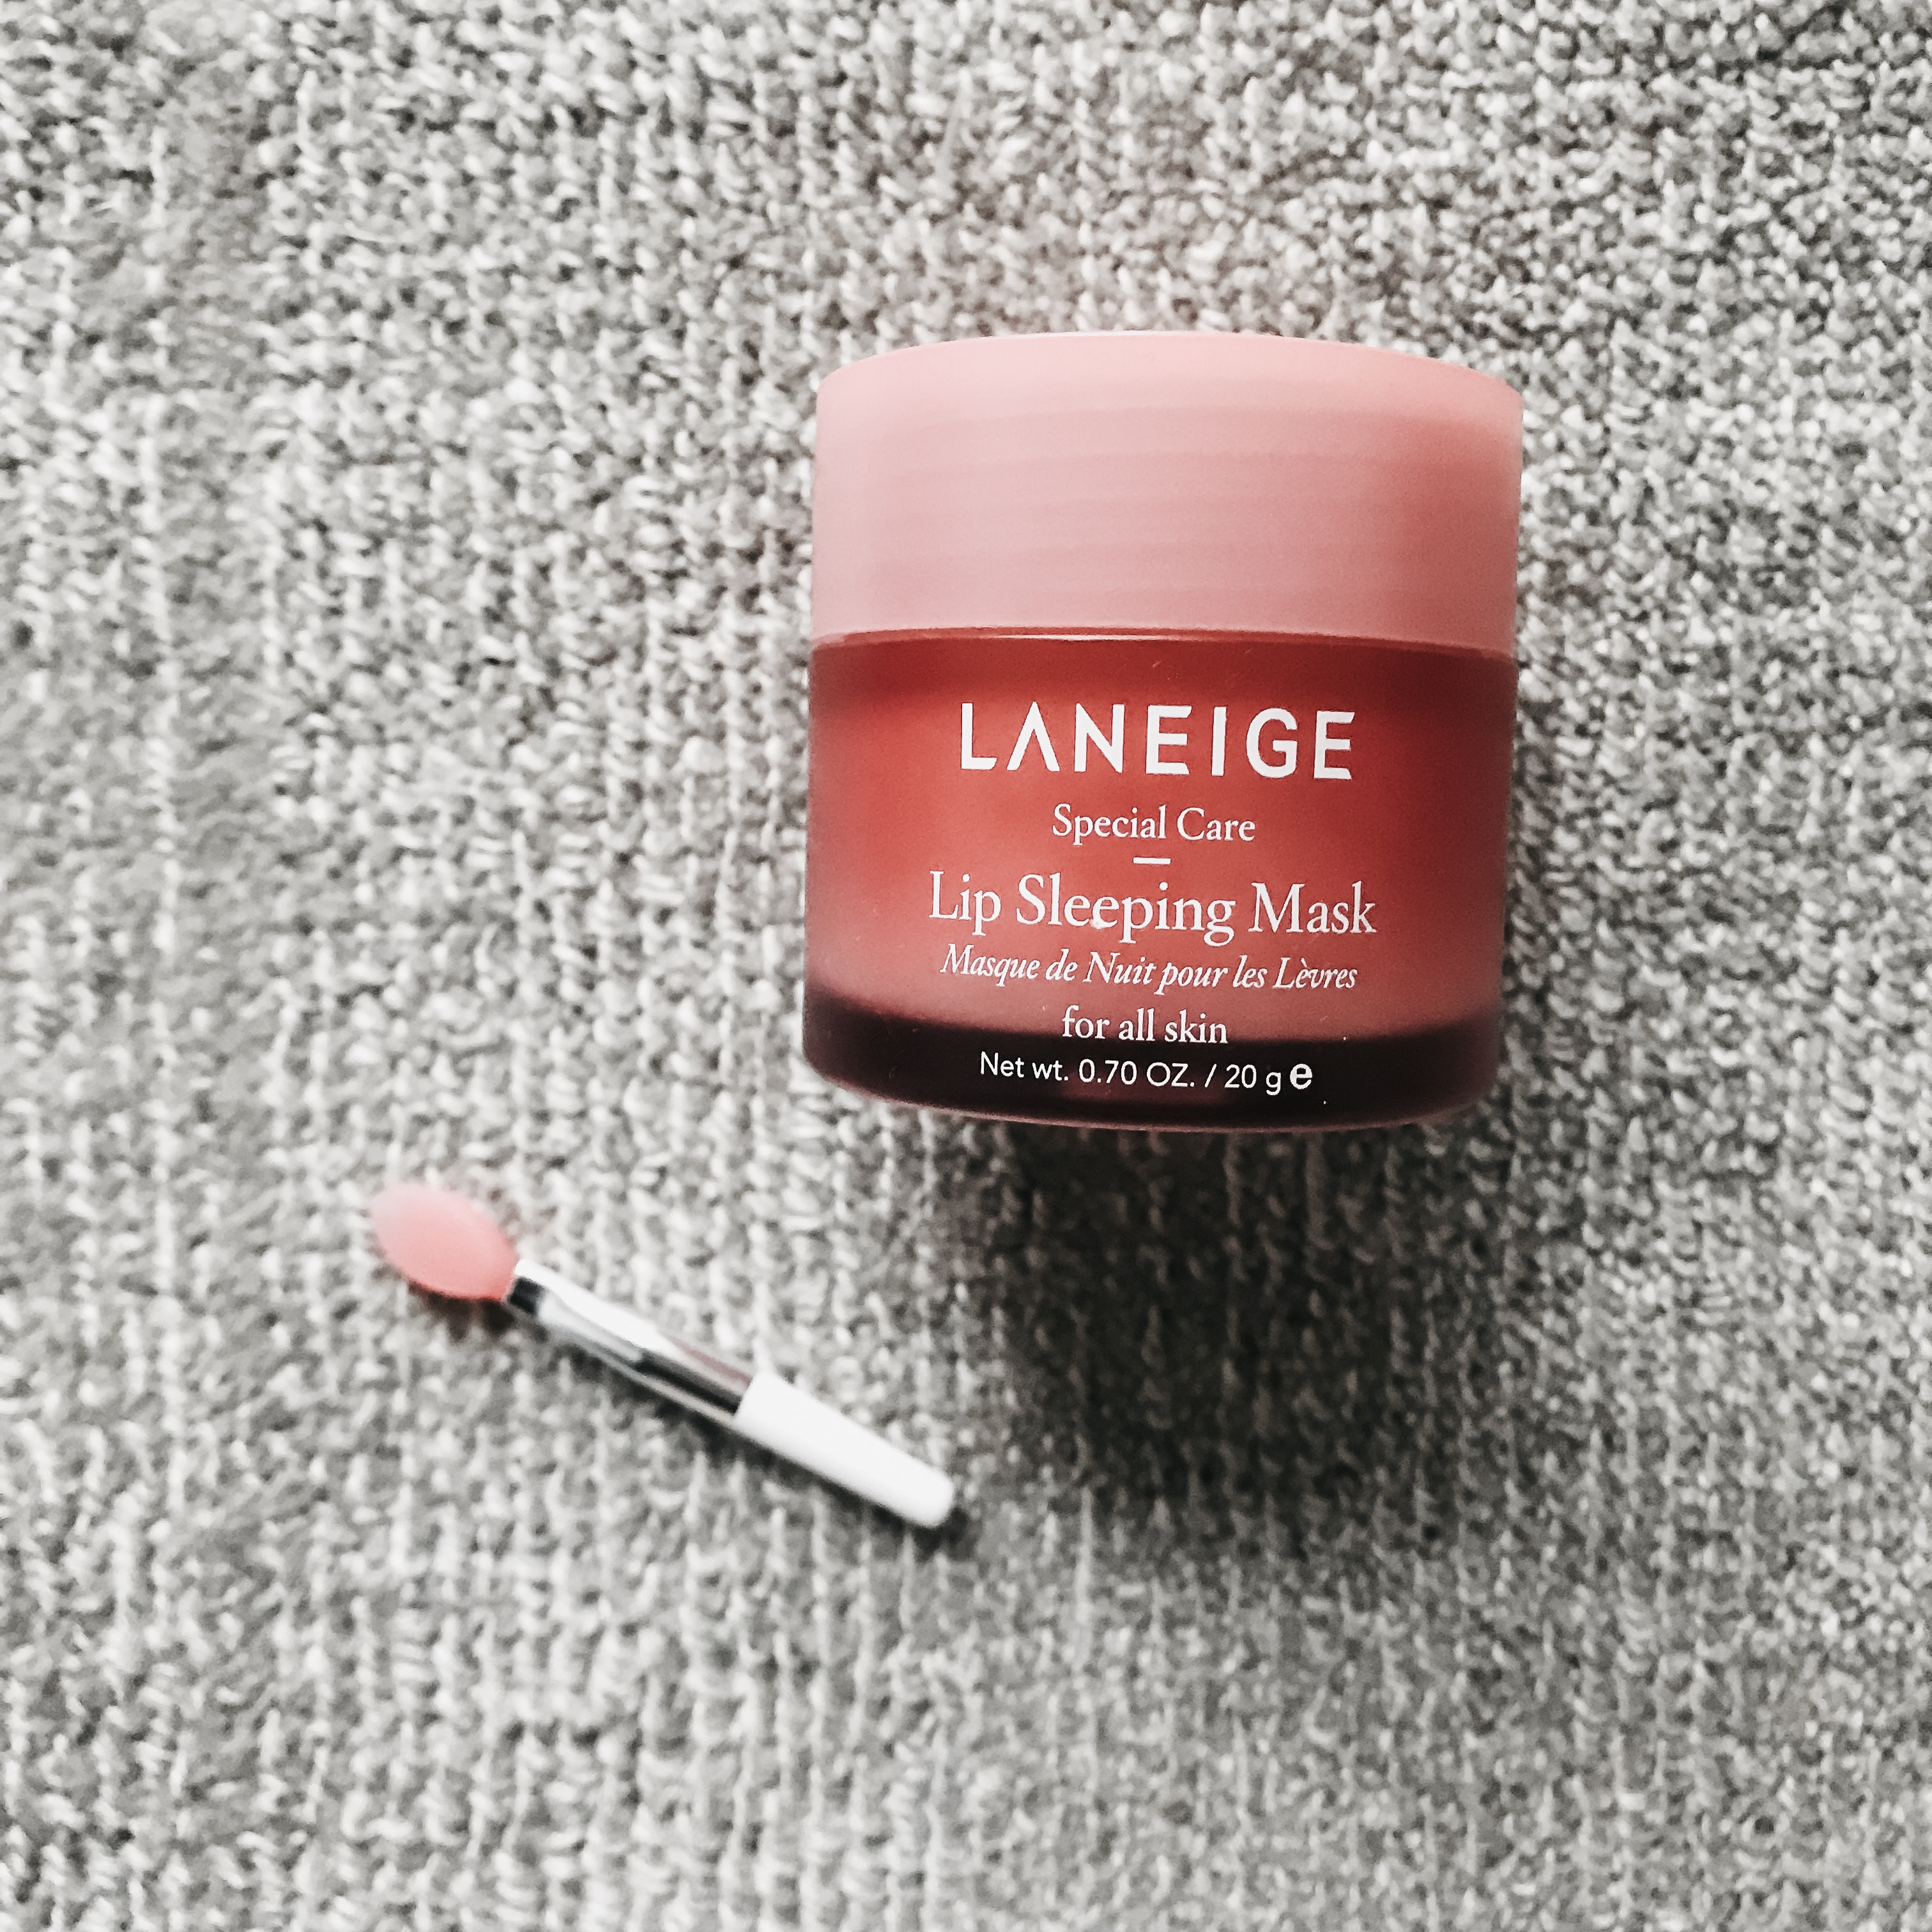 First Impressions of the Laneige Lip Sleeping Mask 2